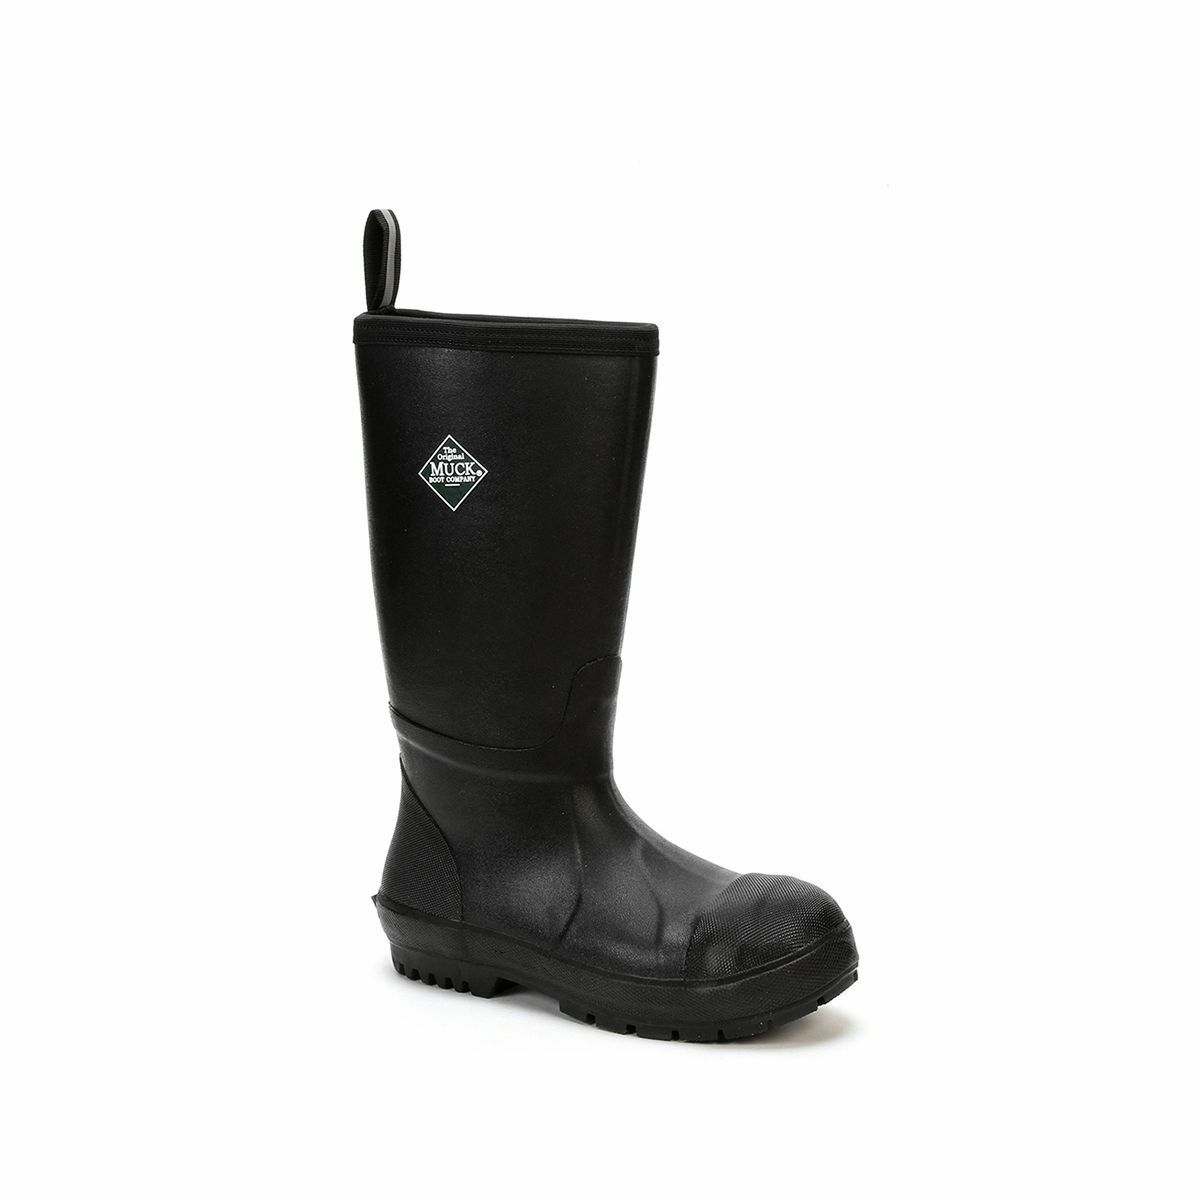 Muck Boots Company Adult's Men's/Women's CHORE RESISTANT TALL STEEL TOE, BLACK